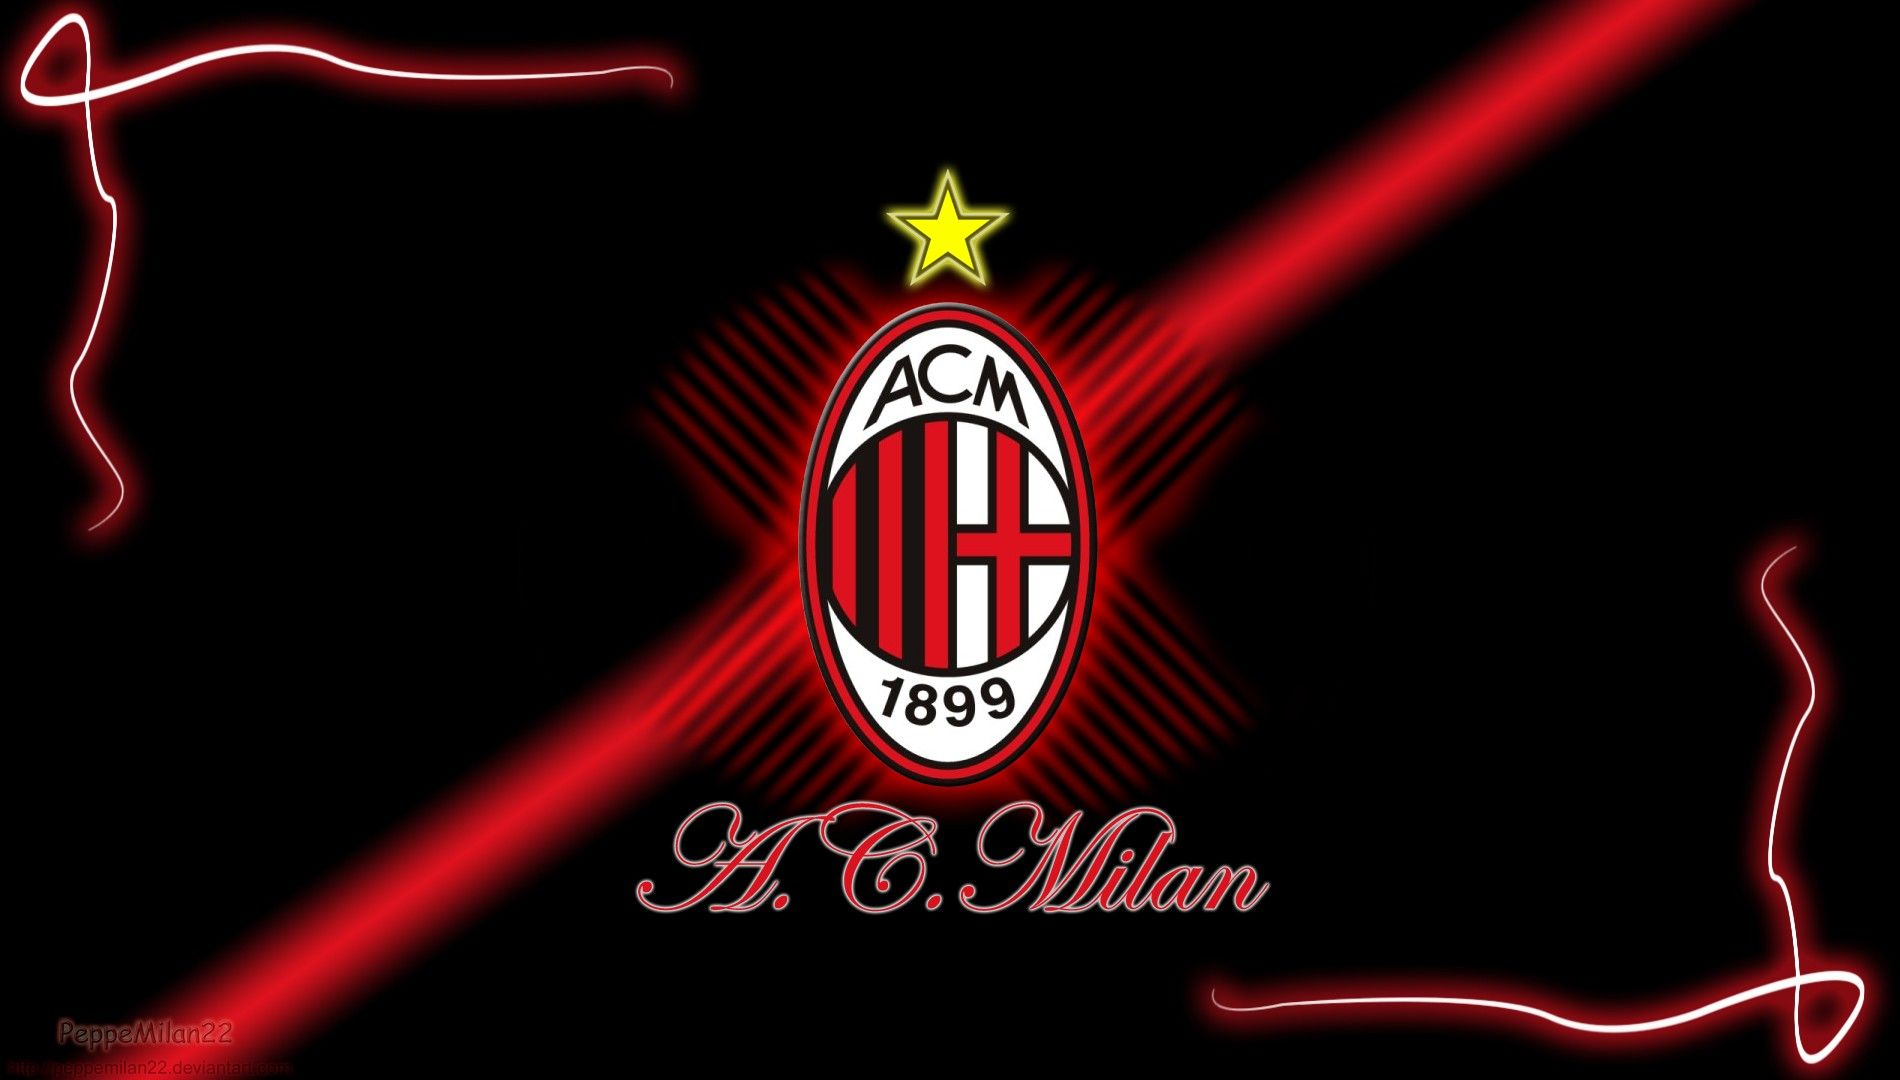 Ac Milan Football Logo Black Background Hd Wallpaper Widescreen